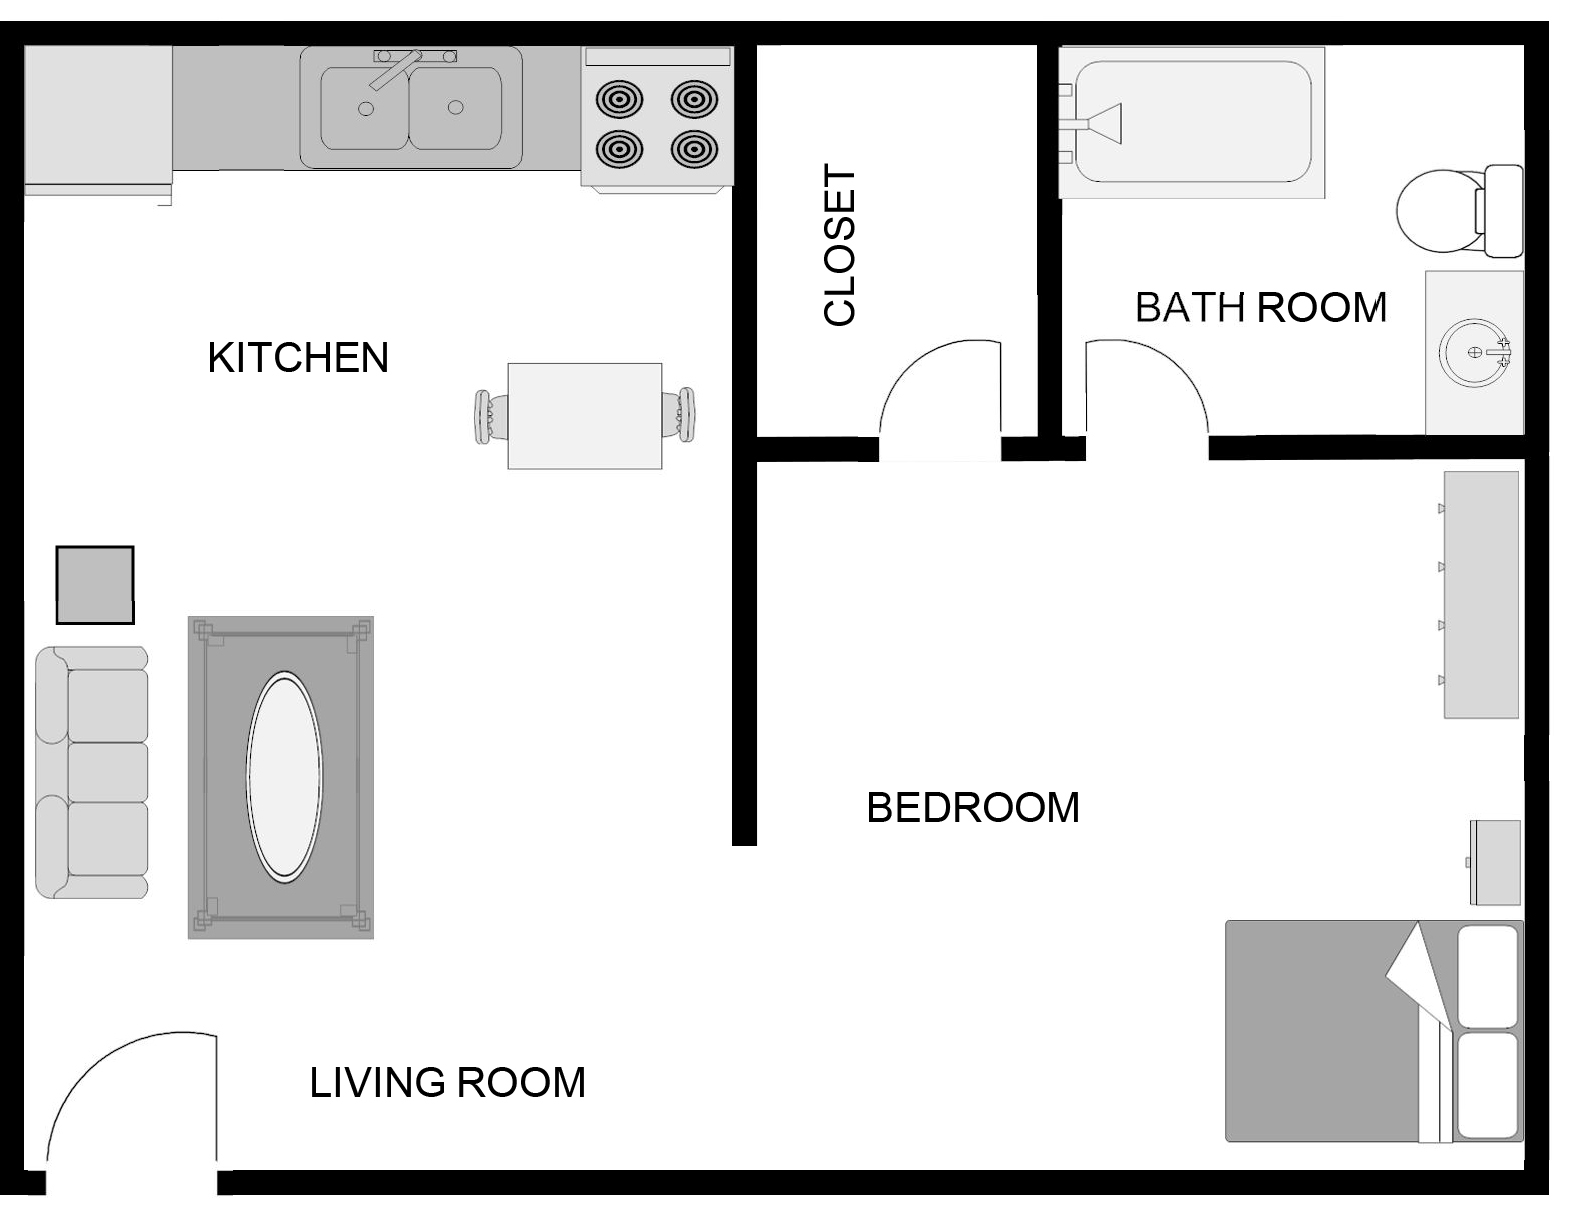 Floor Plans of Tara Garden Apartments in Huntsville, AL